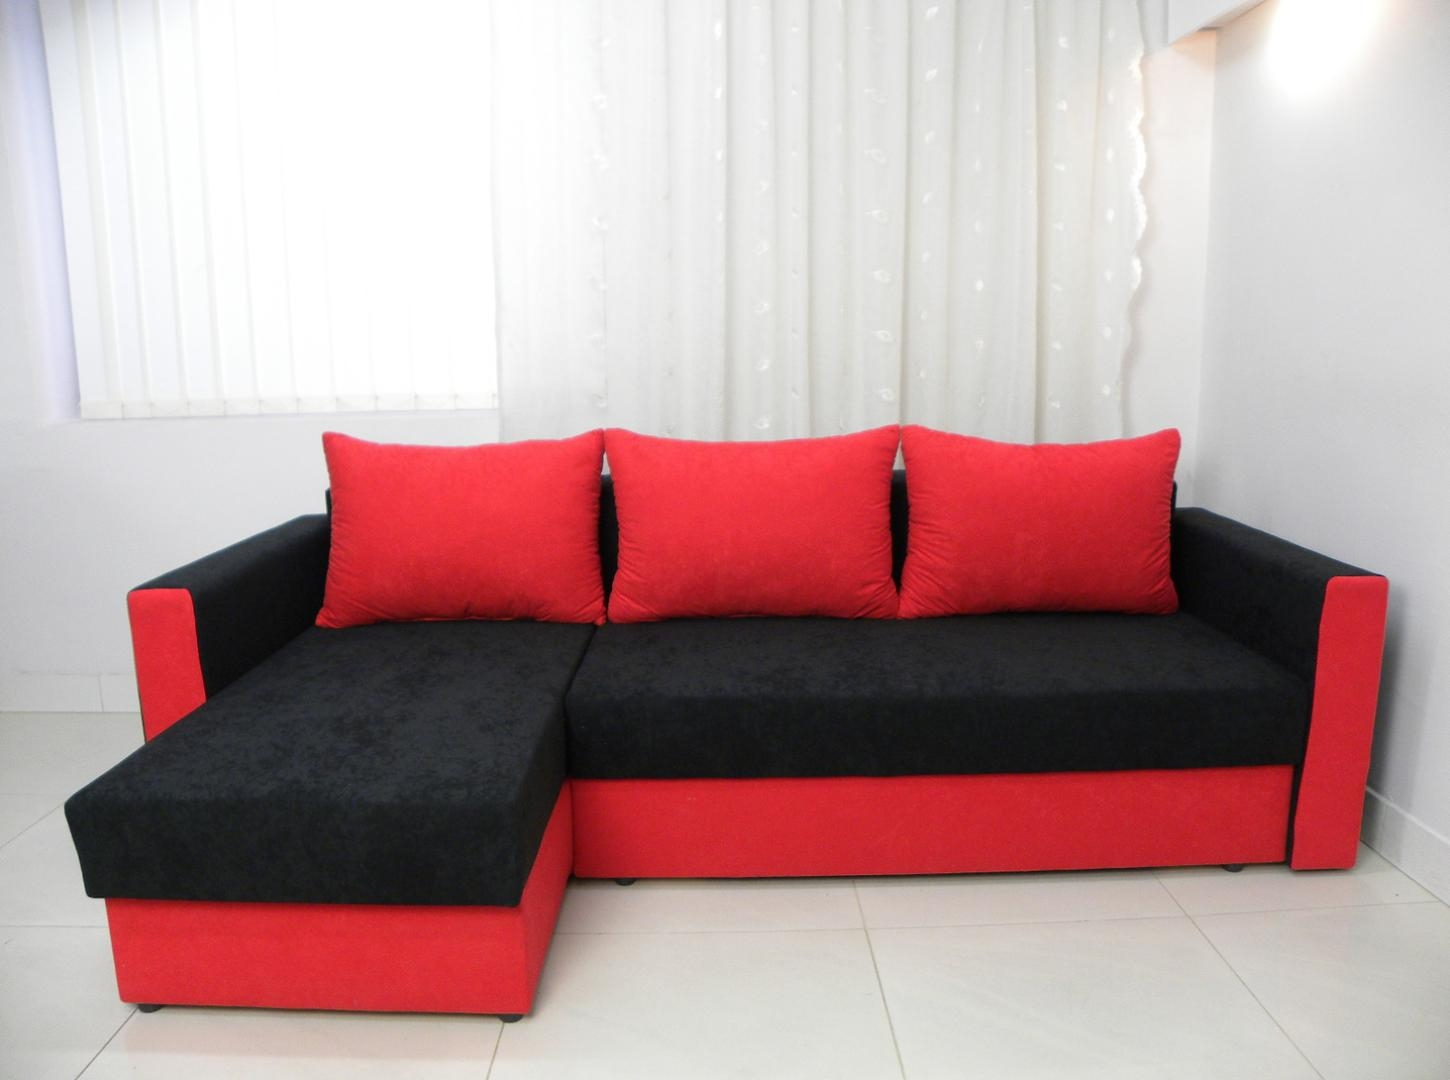 Sofa Corner Bed Red Redditch South Wales Leather Cover Birmingham Inside Corner Sofa Bed Sale (Image 18 of 20)